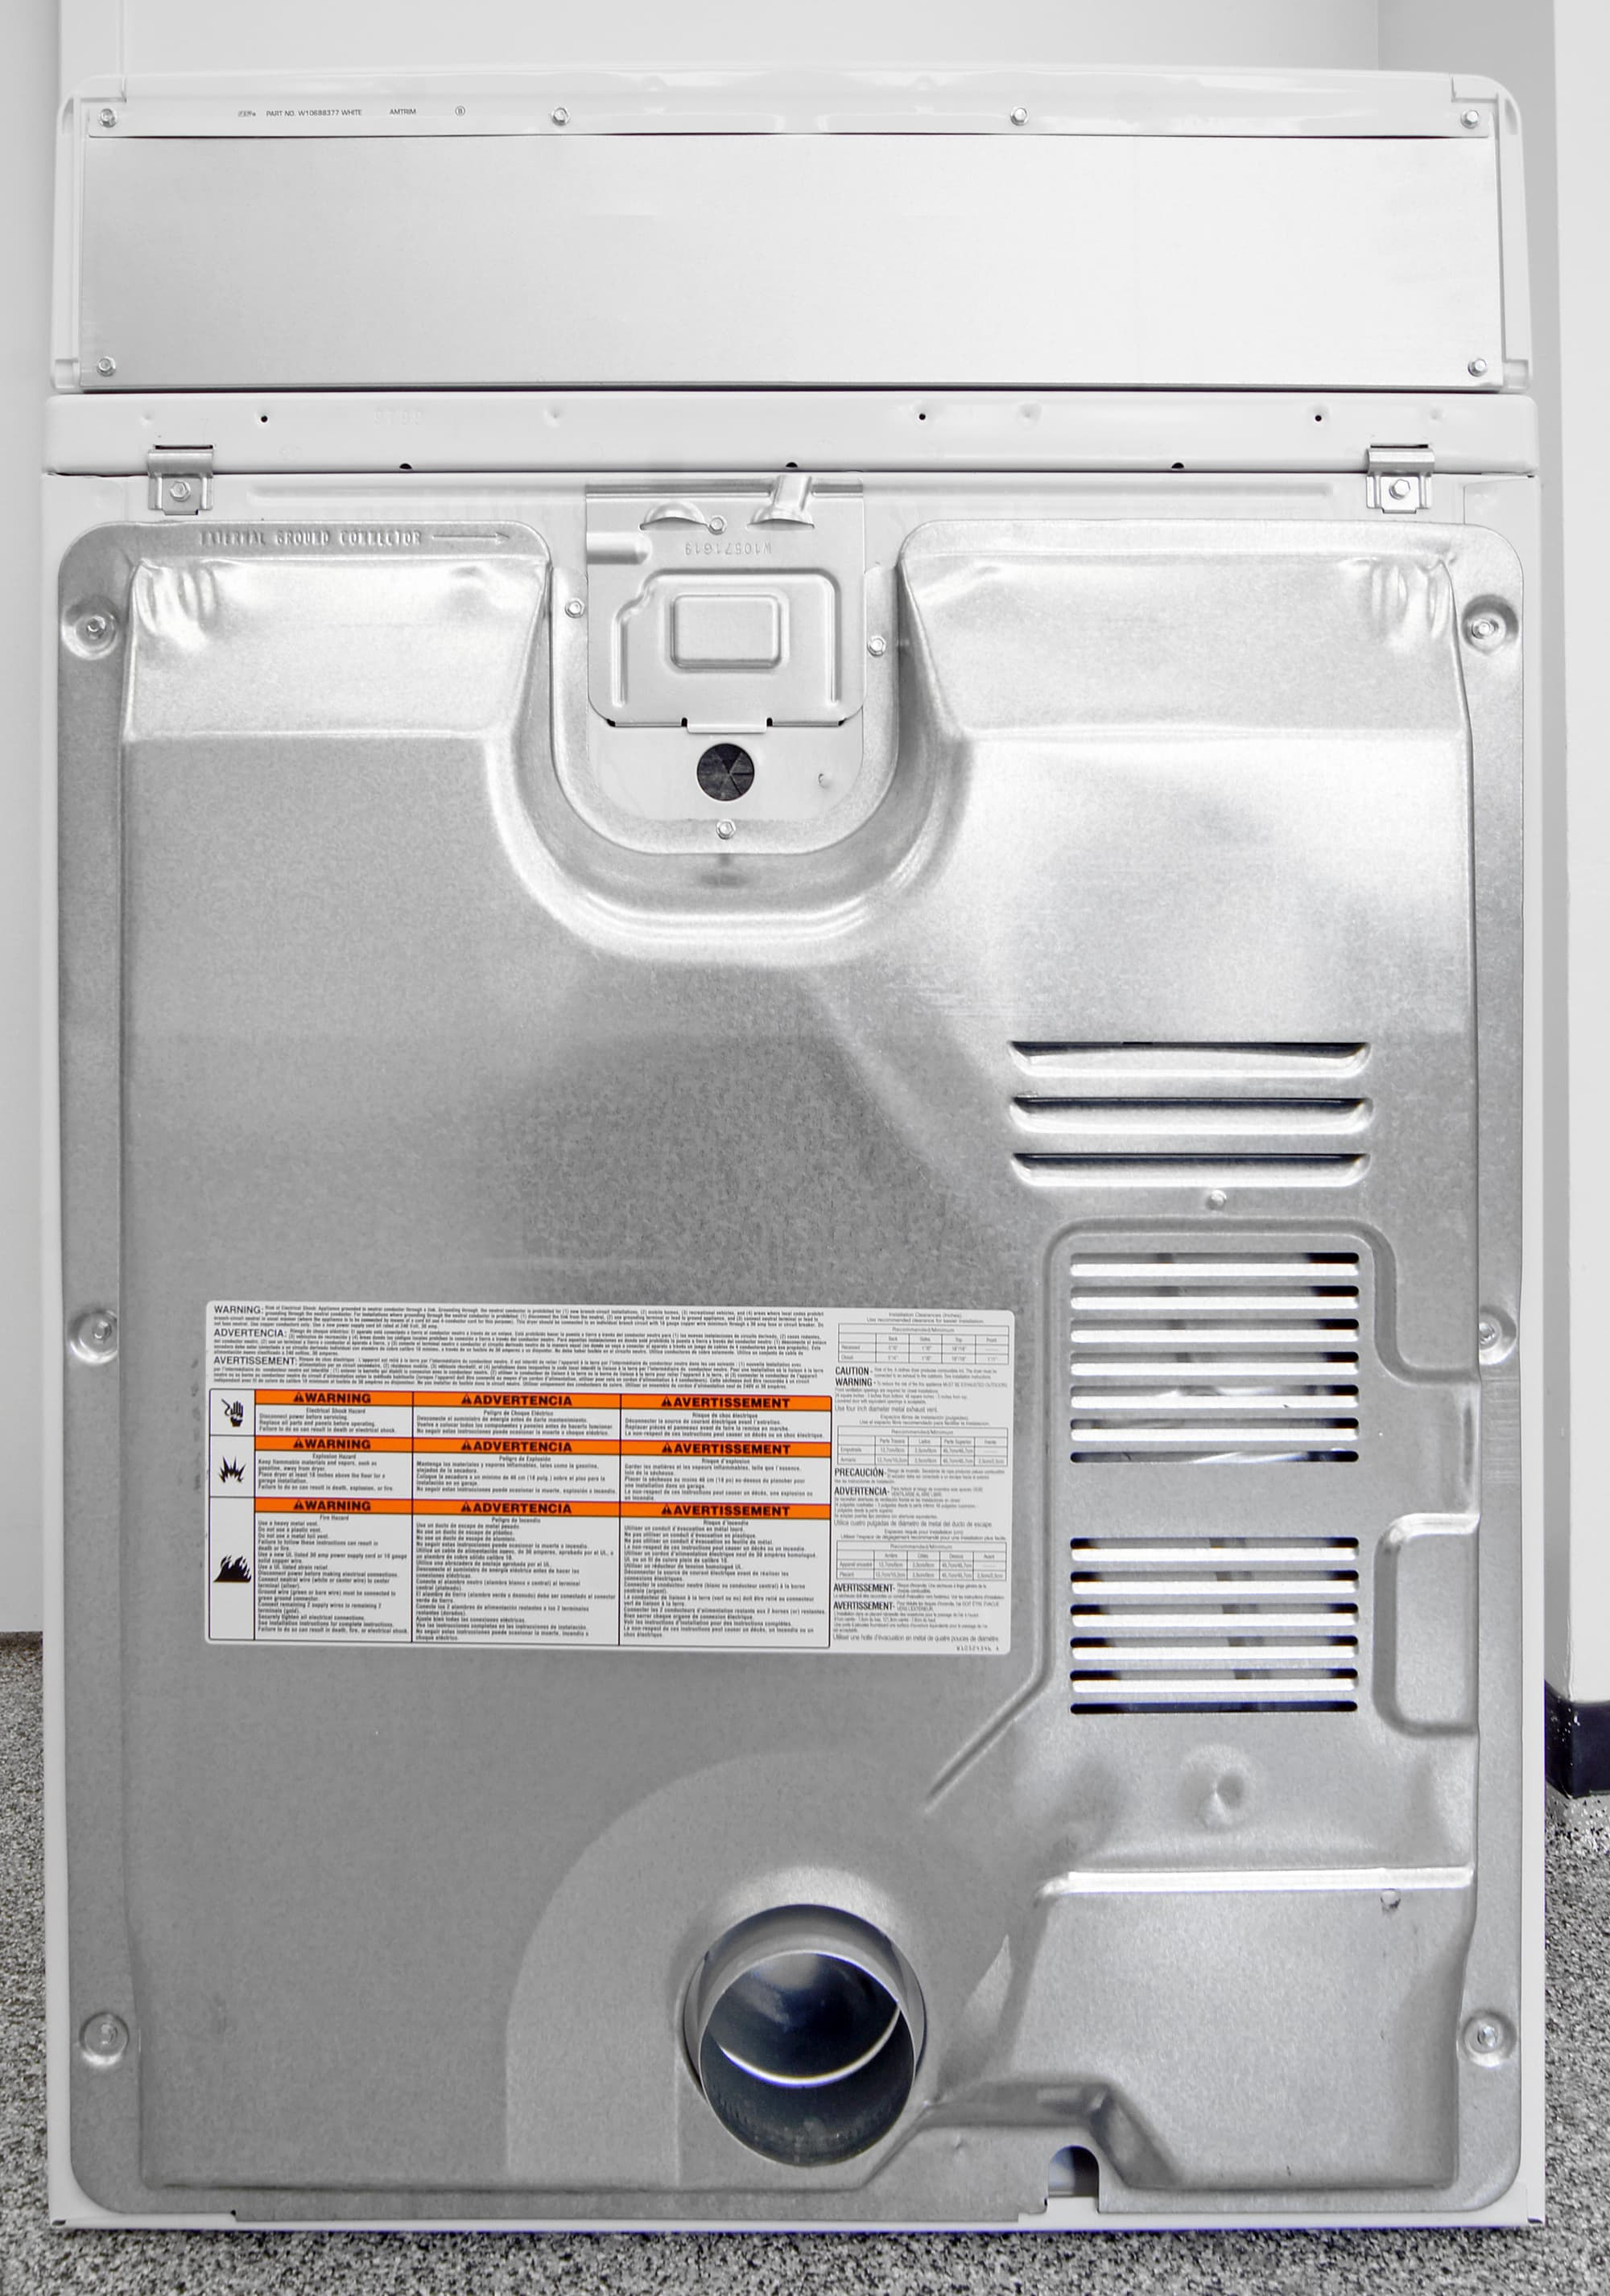 No steam means no water hookup in the back of the Maytag Centennial MEDC555DW.